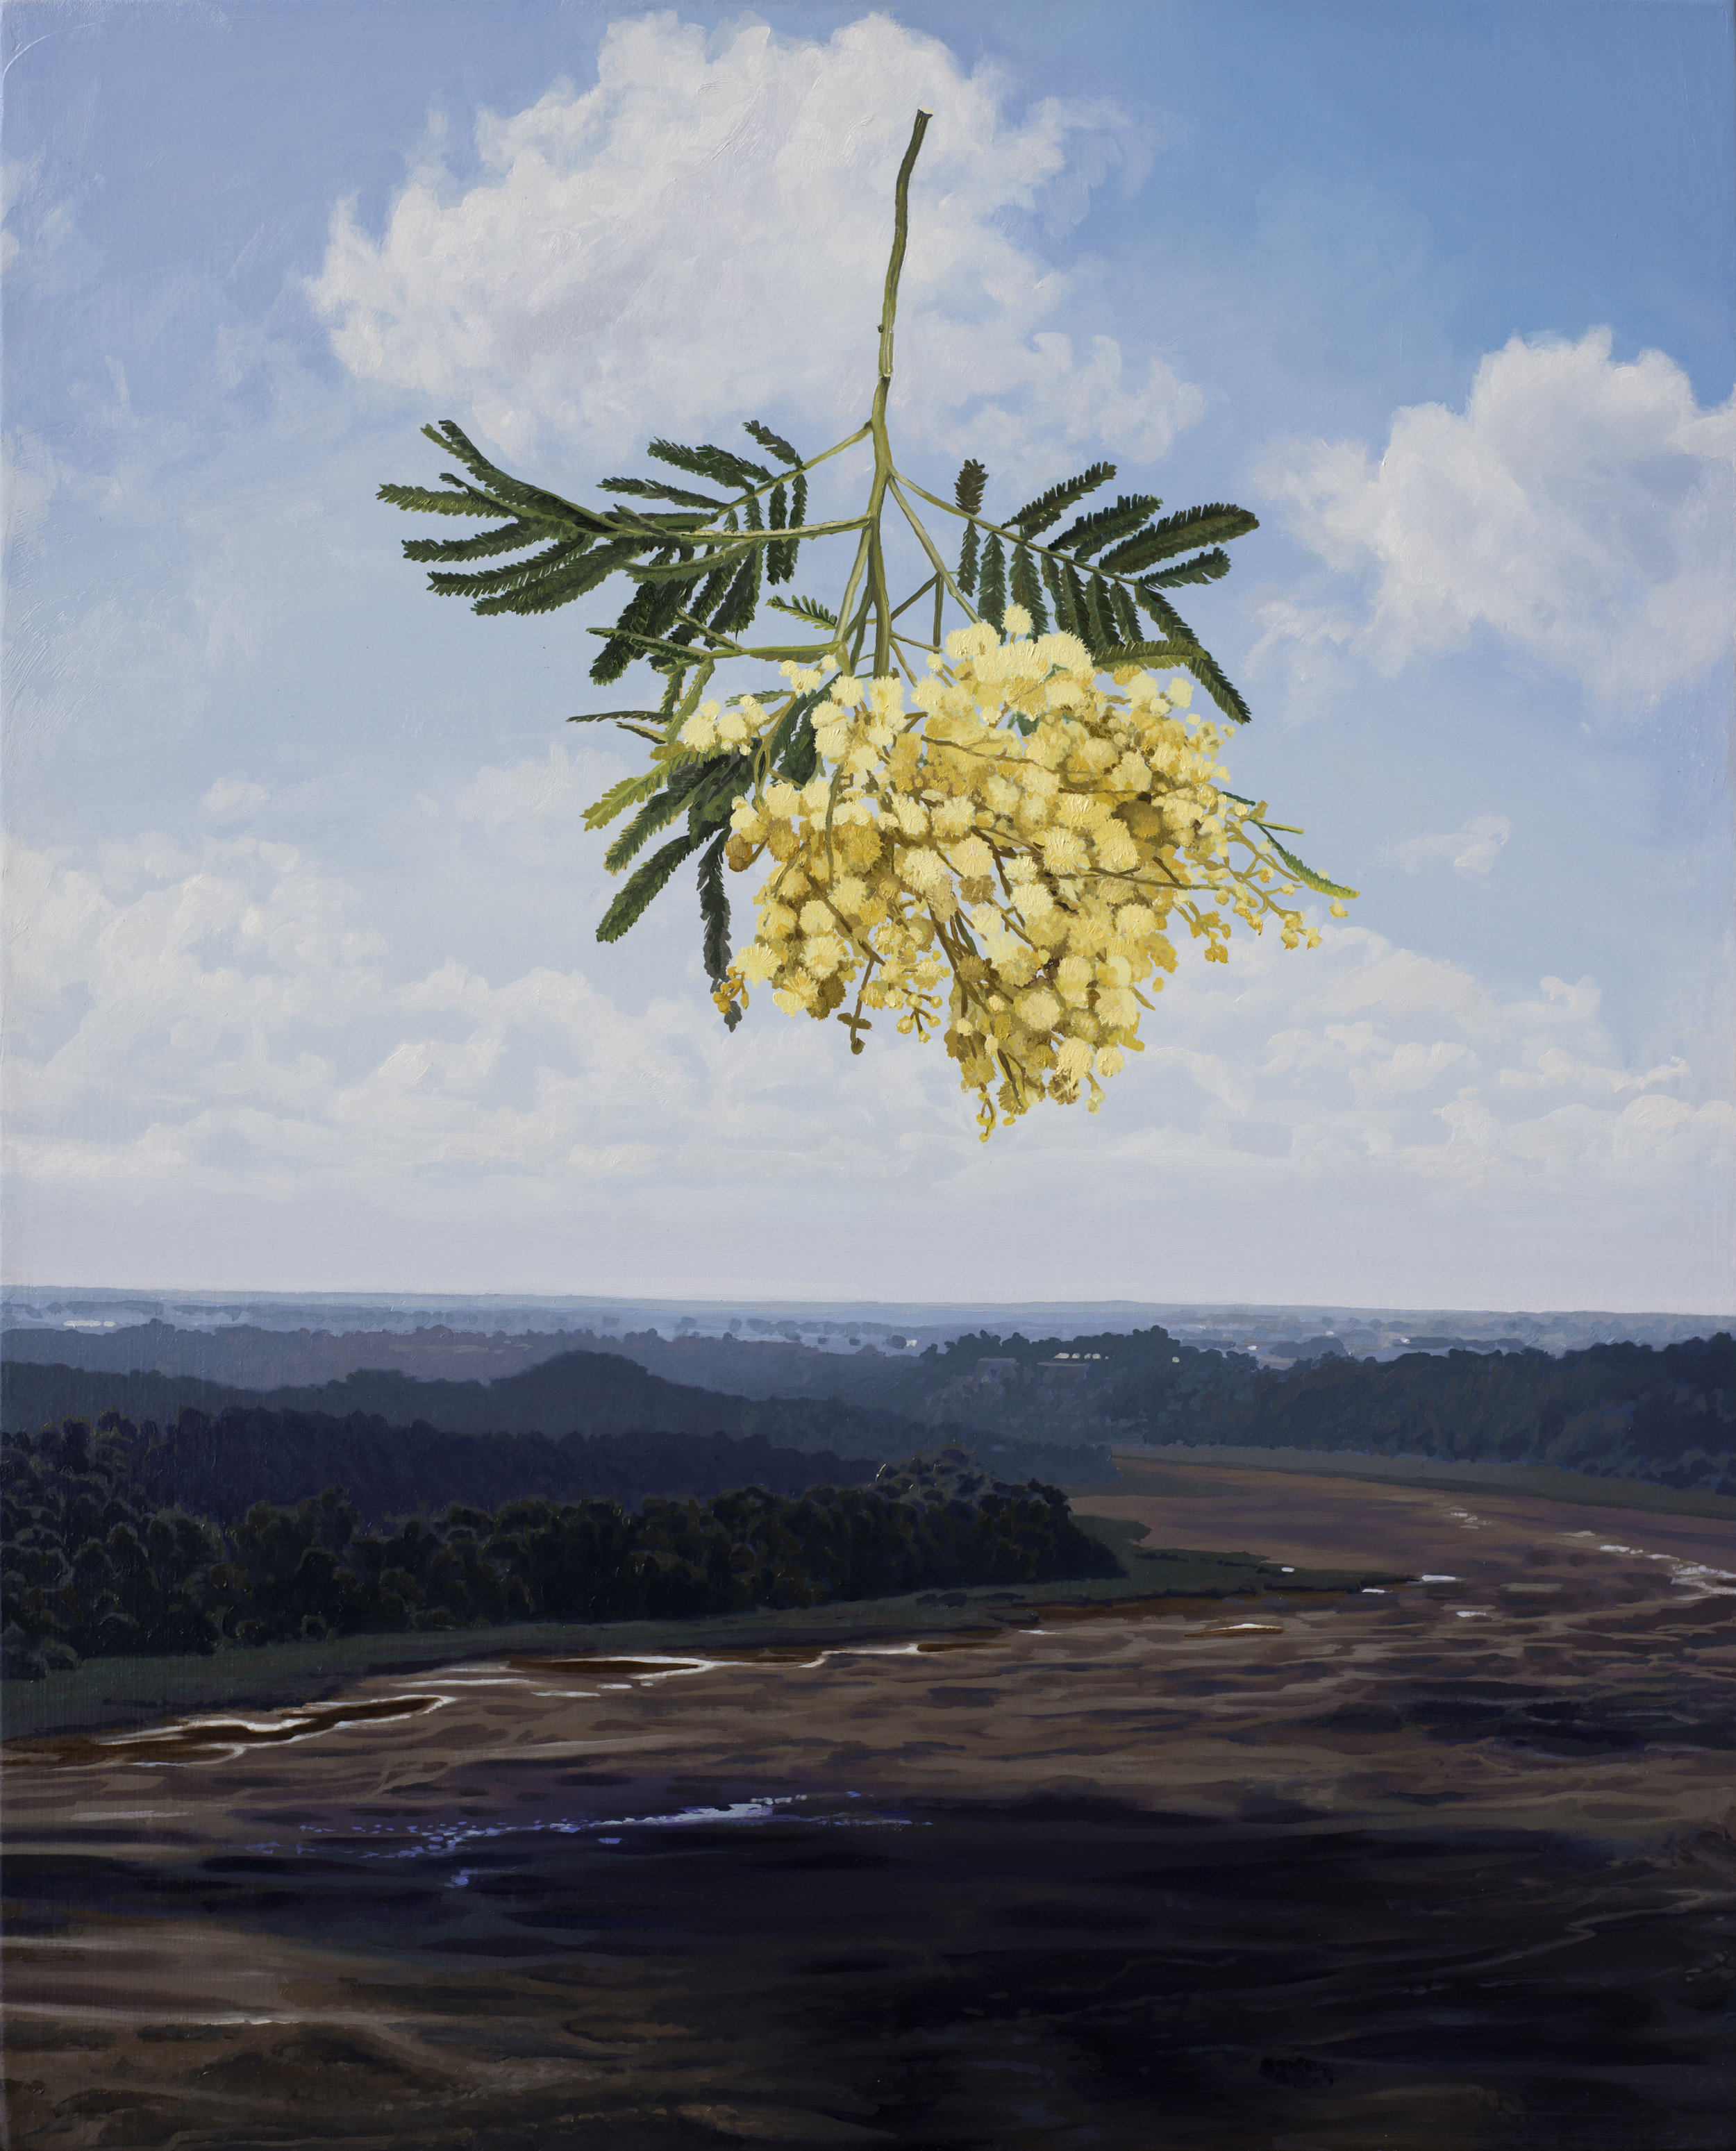 Drought in the Anthropocene : Acacia Decurrens